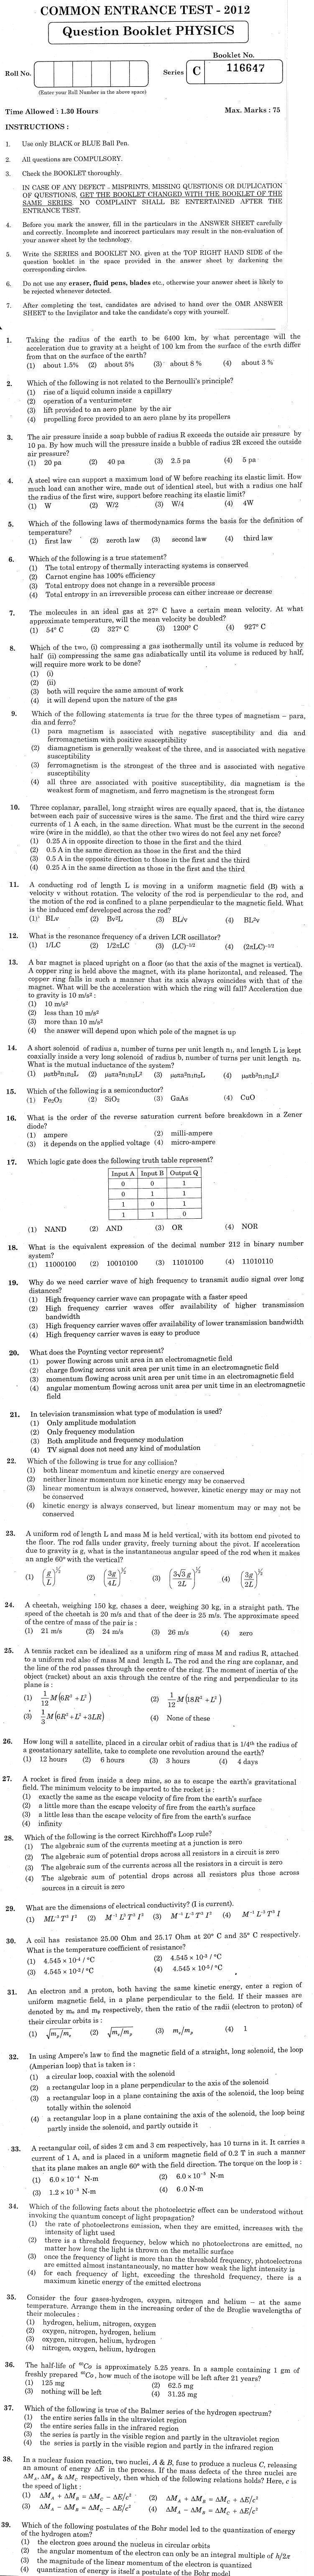 J&K CET 2012 Physics Question Paper